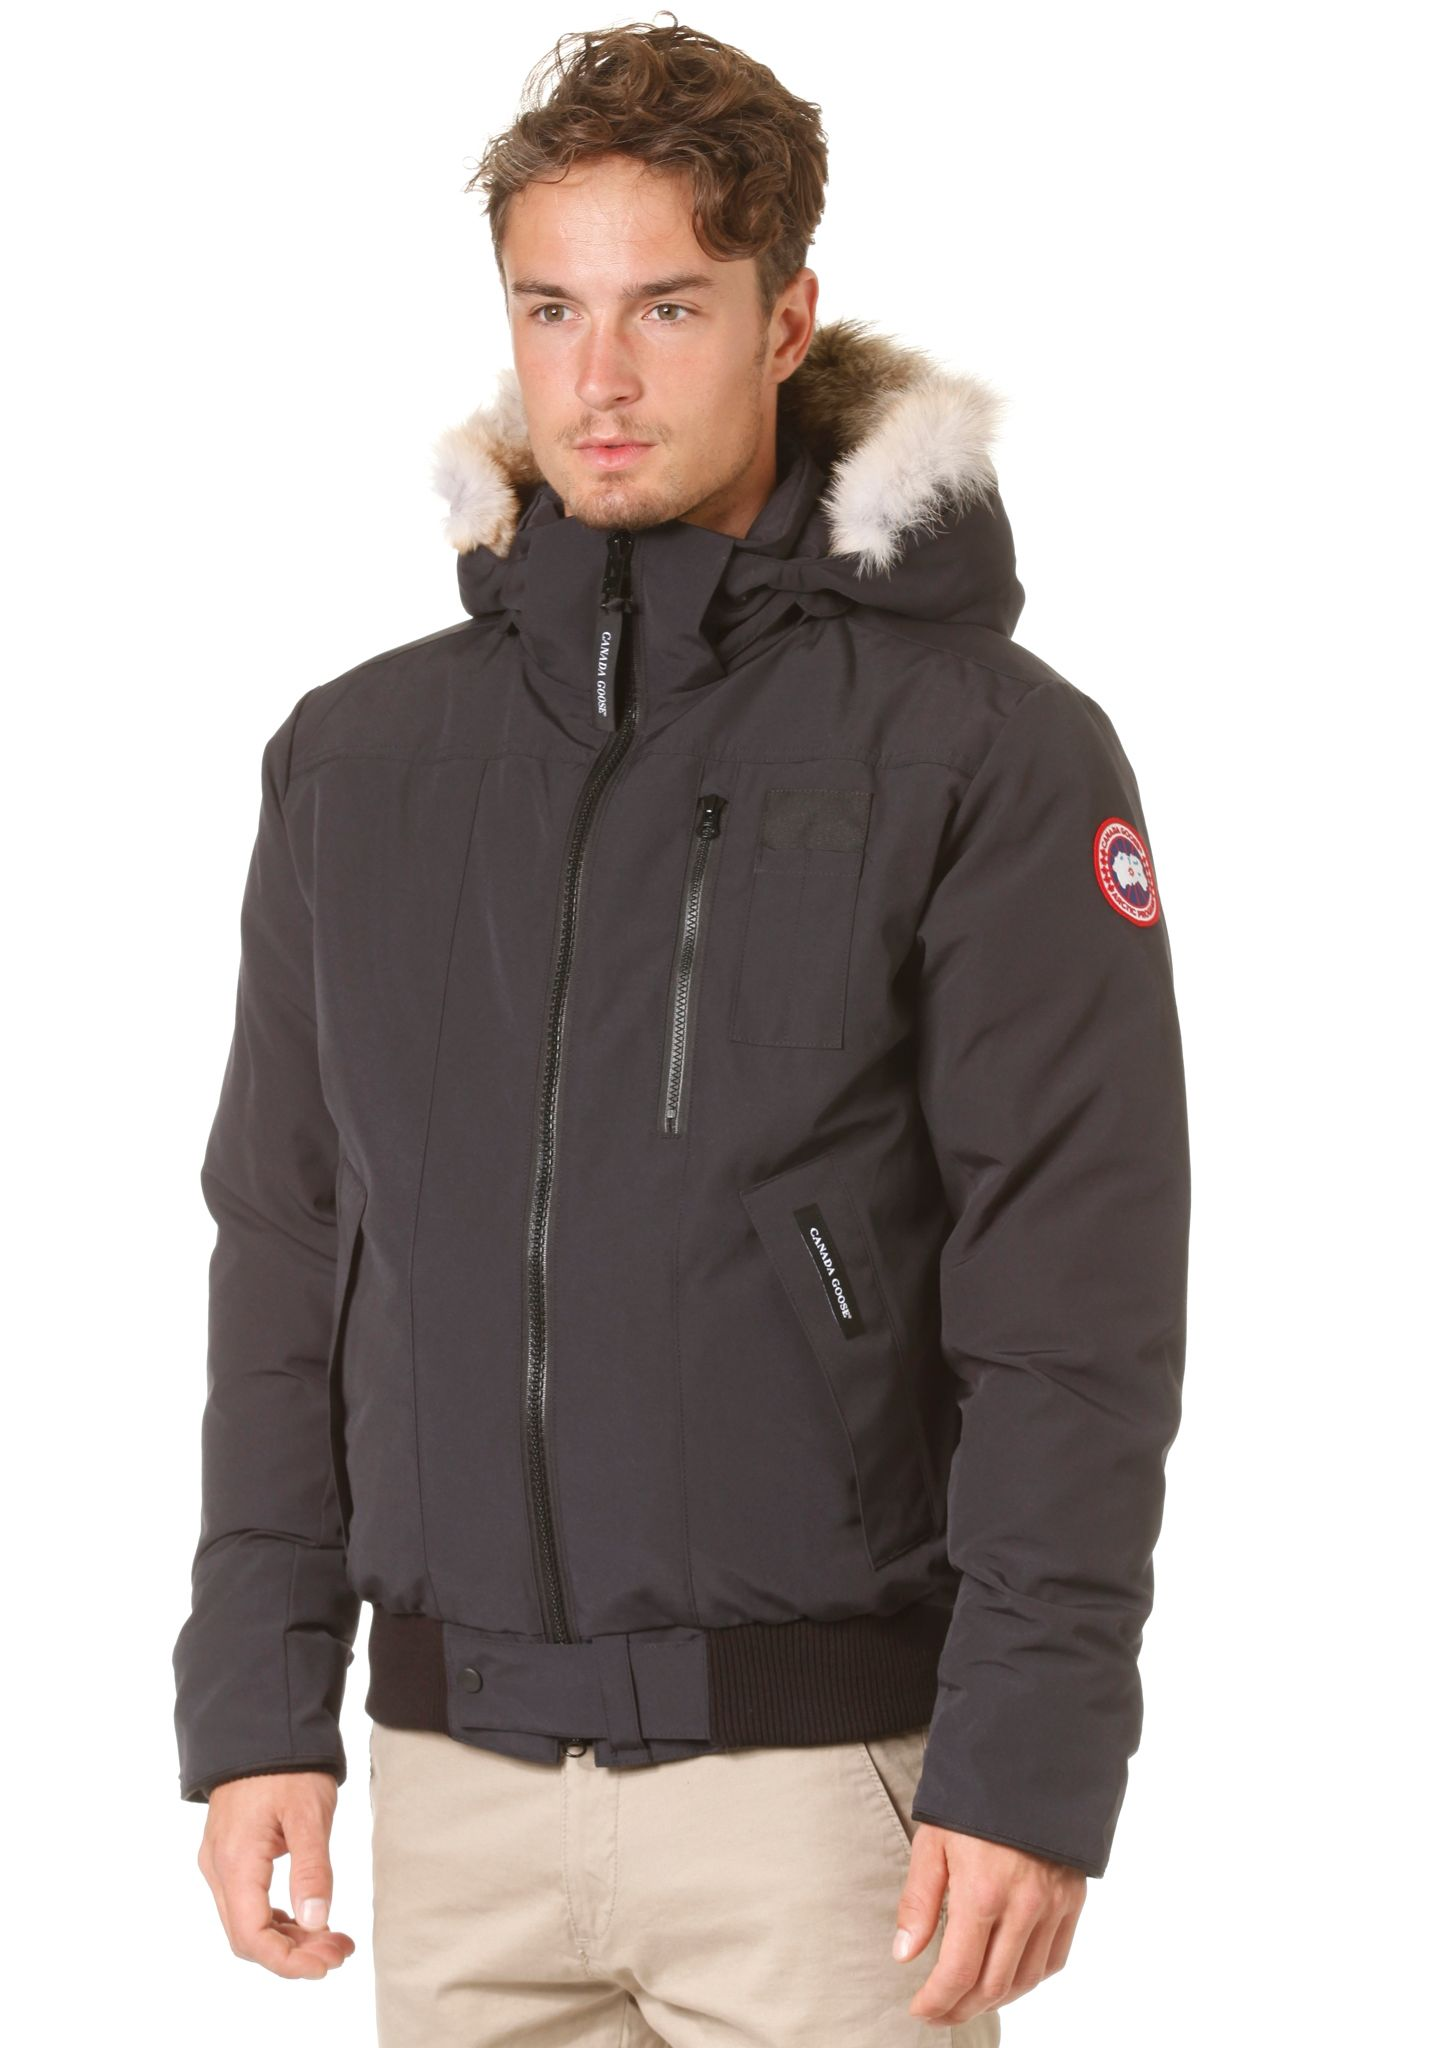 Canada Goose womens replica shop - CANADA GOOSE Borden Bomber Jacket - Functional Jacket for Men ...